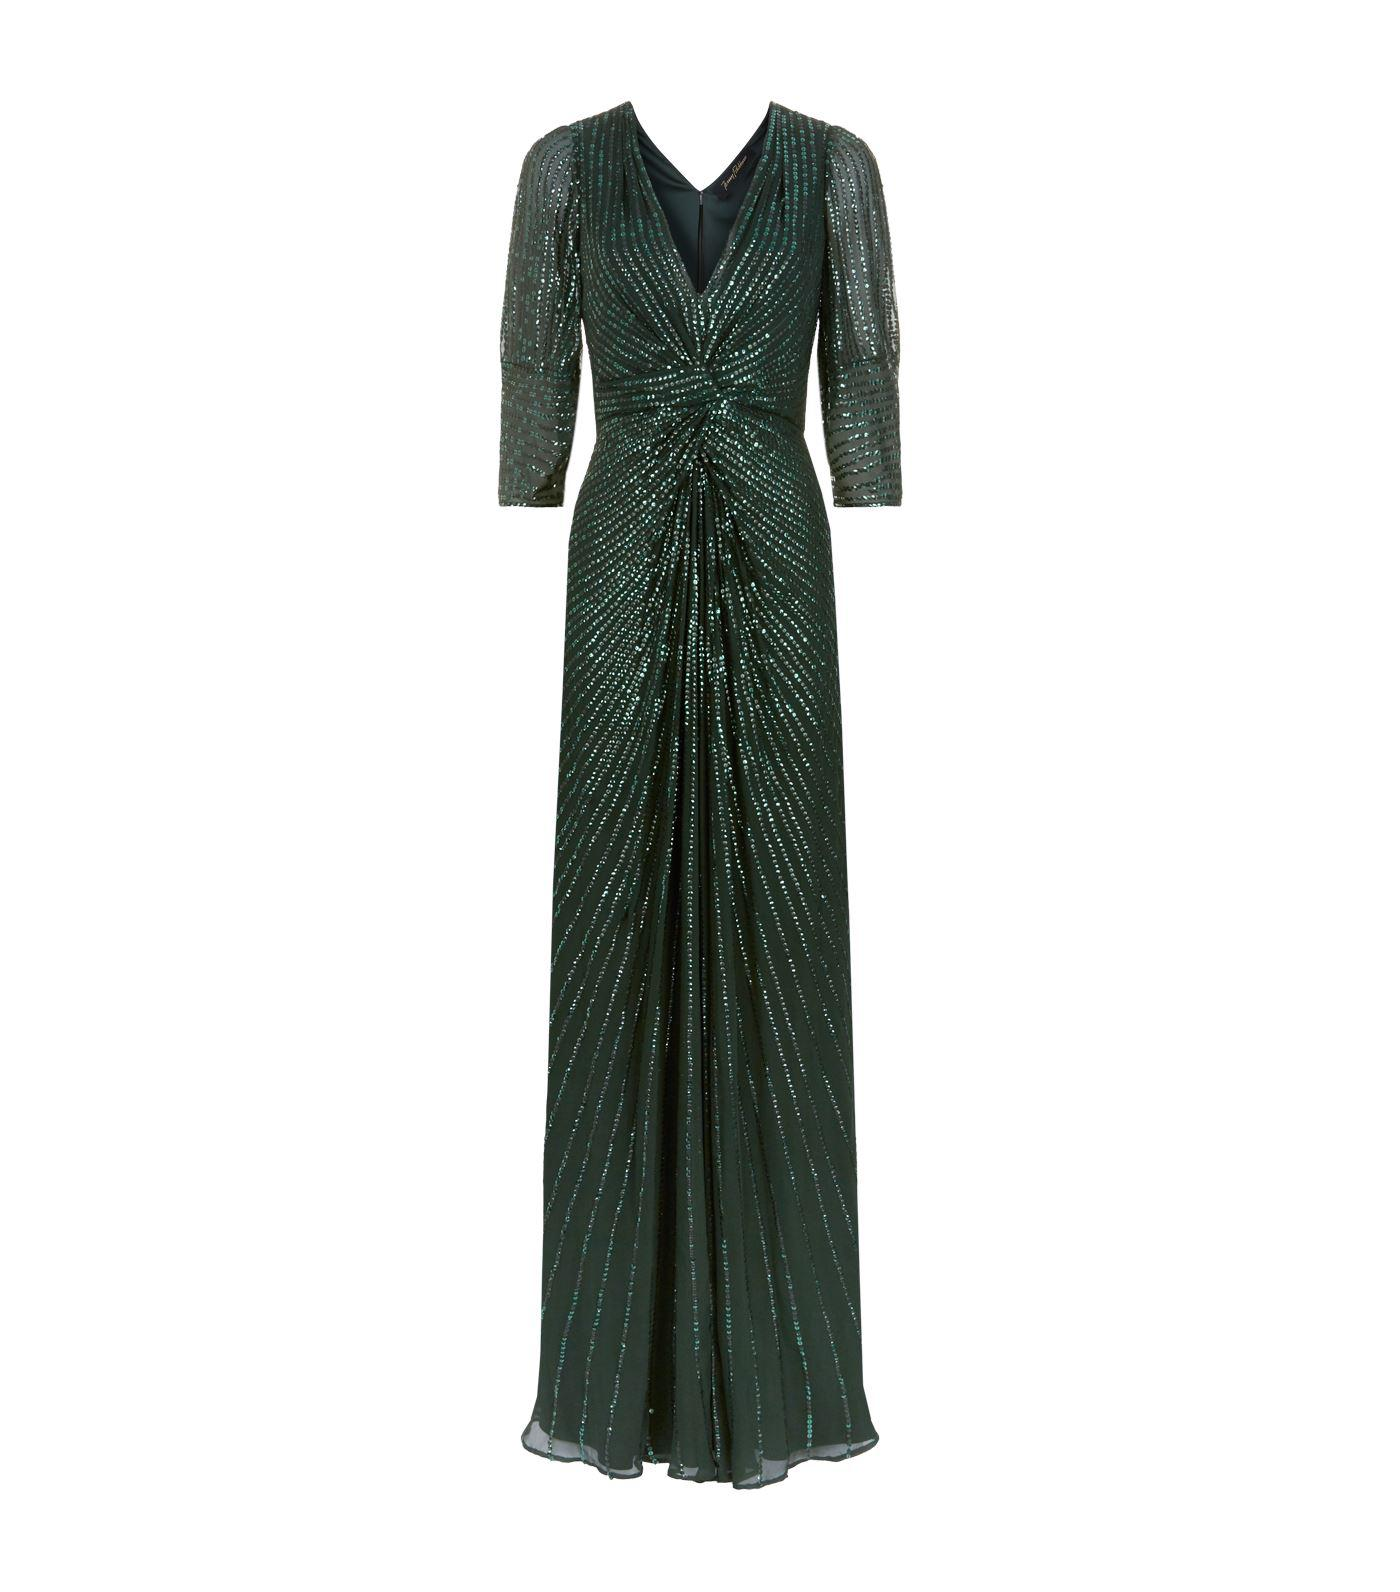 888cca6d Lyst - Jenny Packham Tana Sequin Embellished Gown in Green